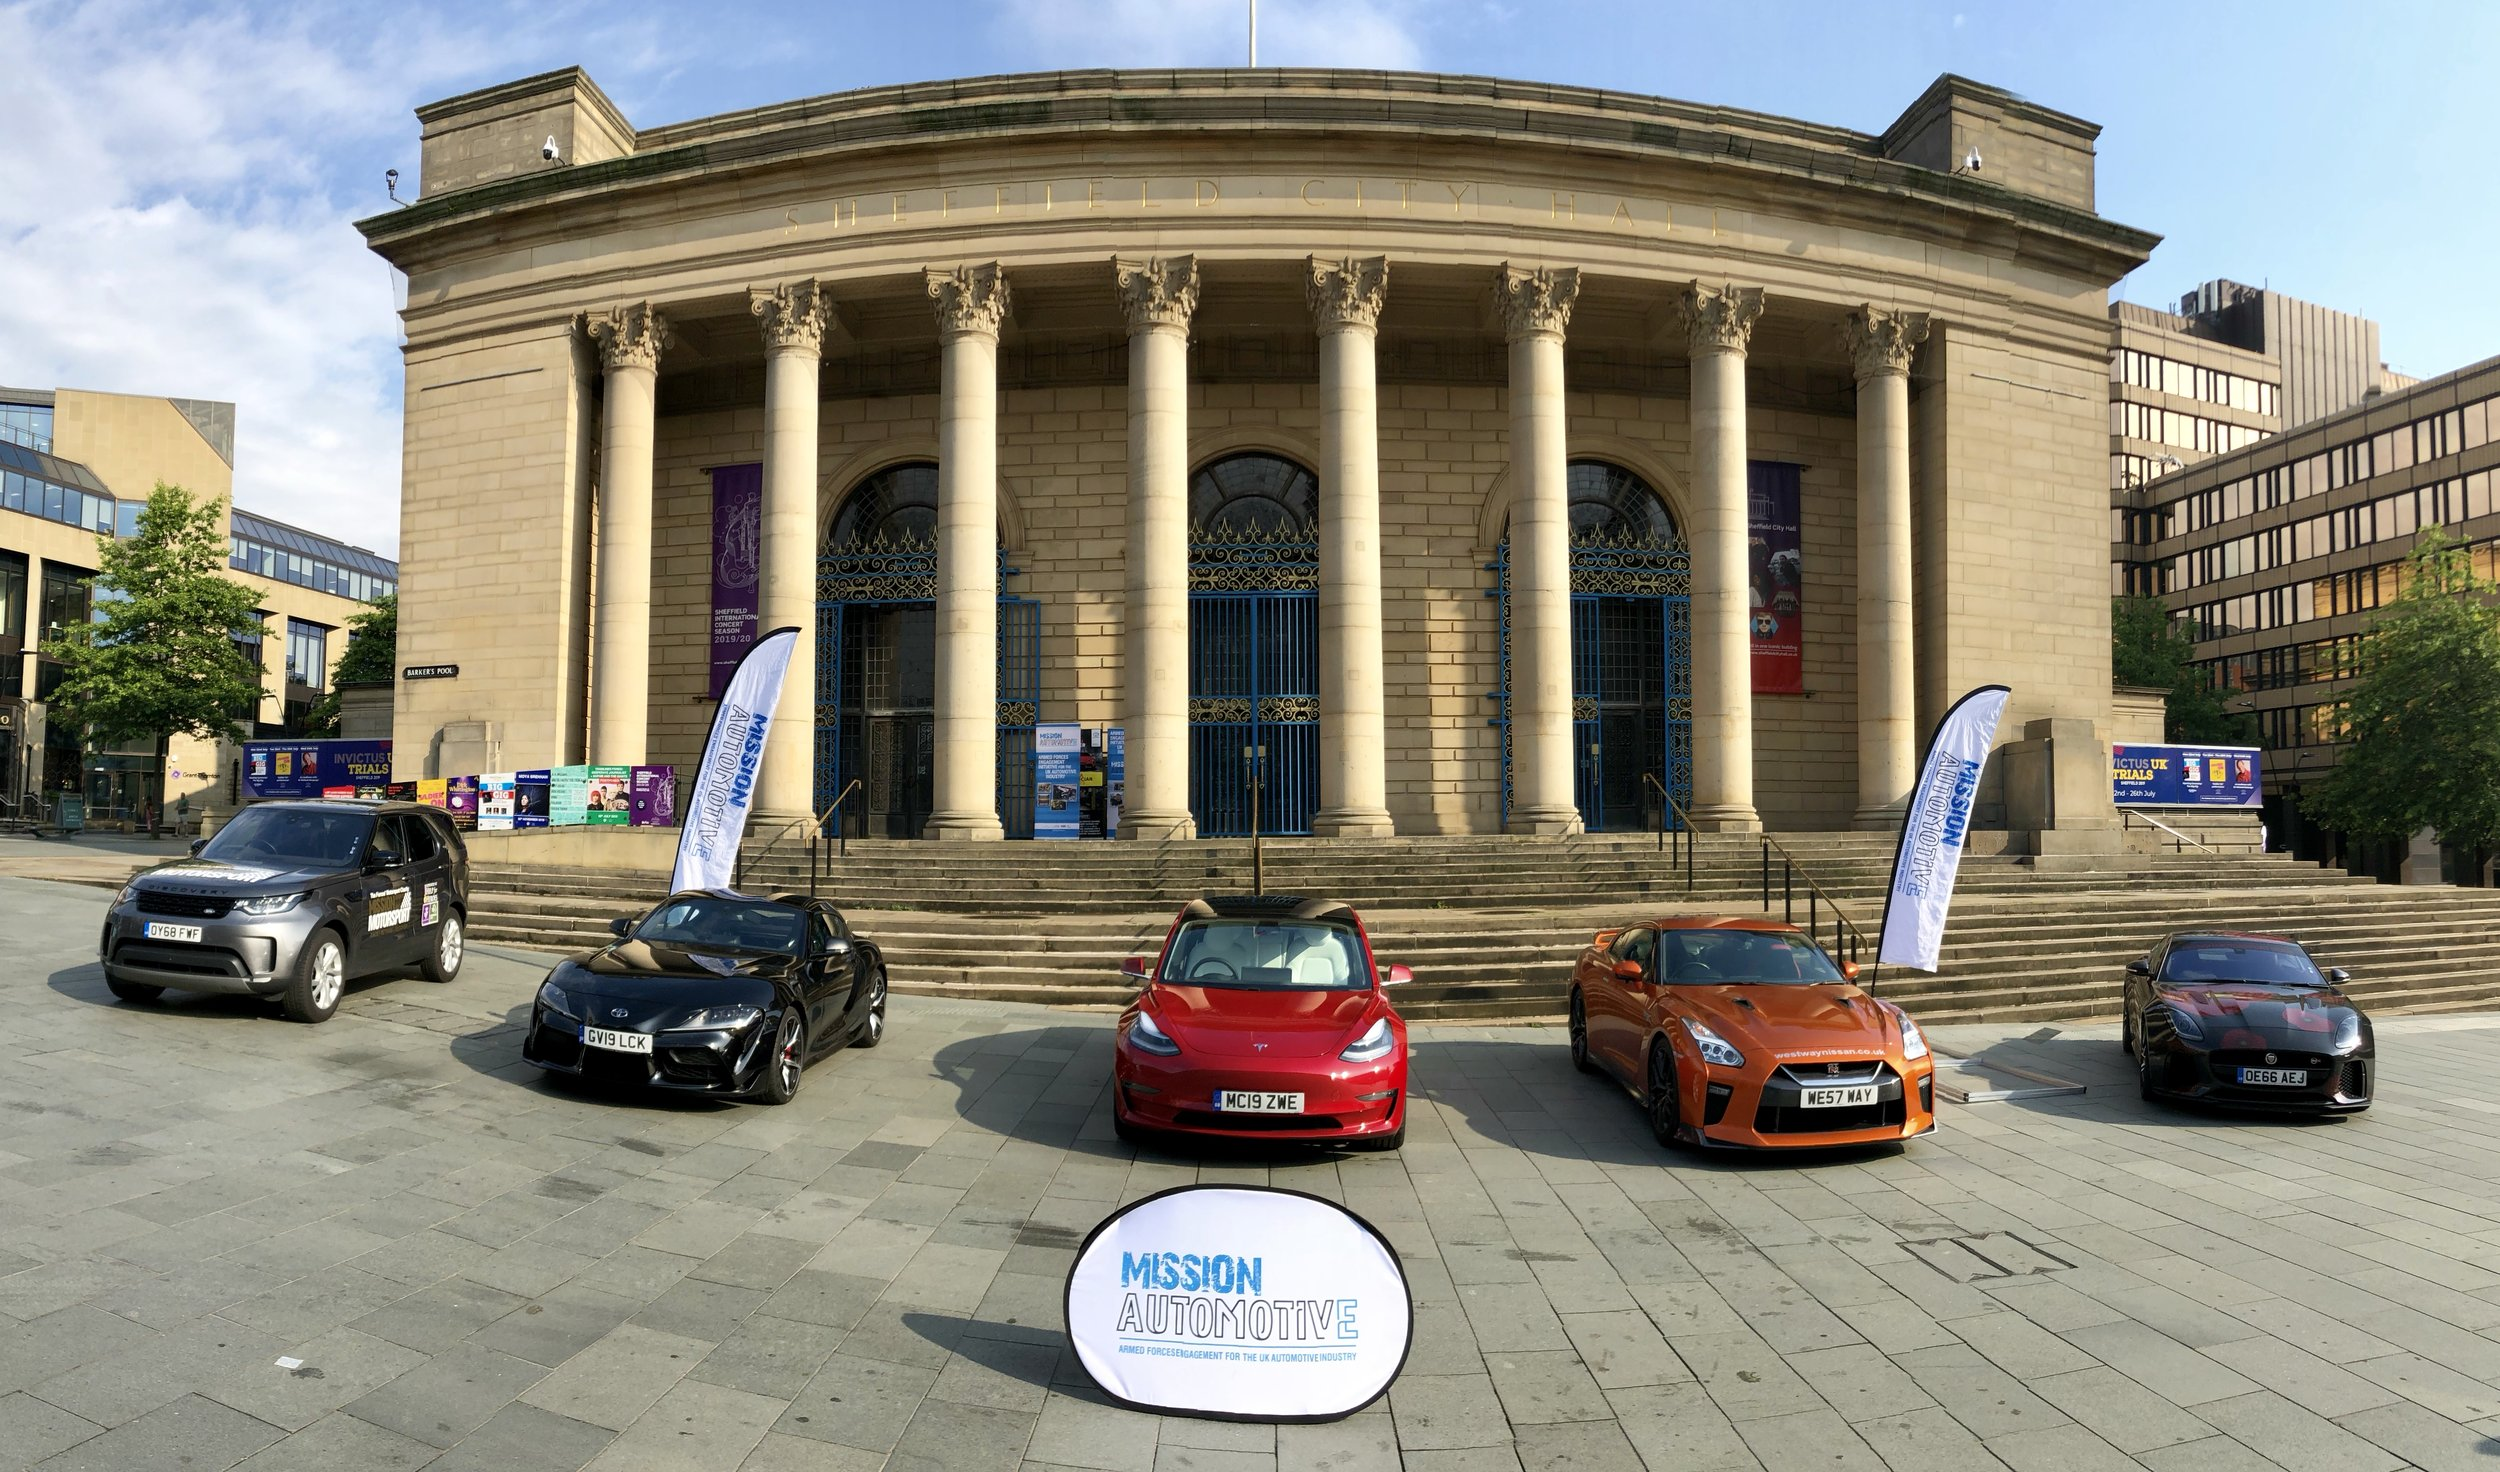 The calm before the storm - Invictus UK Trials CTP Job fair in the centre of Sheffield had a strong Mission Automotive theme for the 300+ service leavers attending